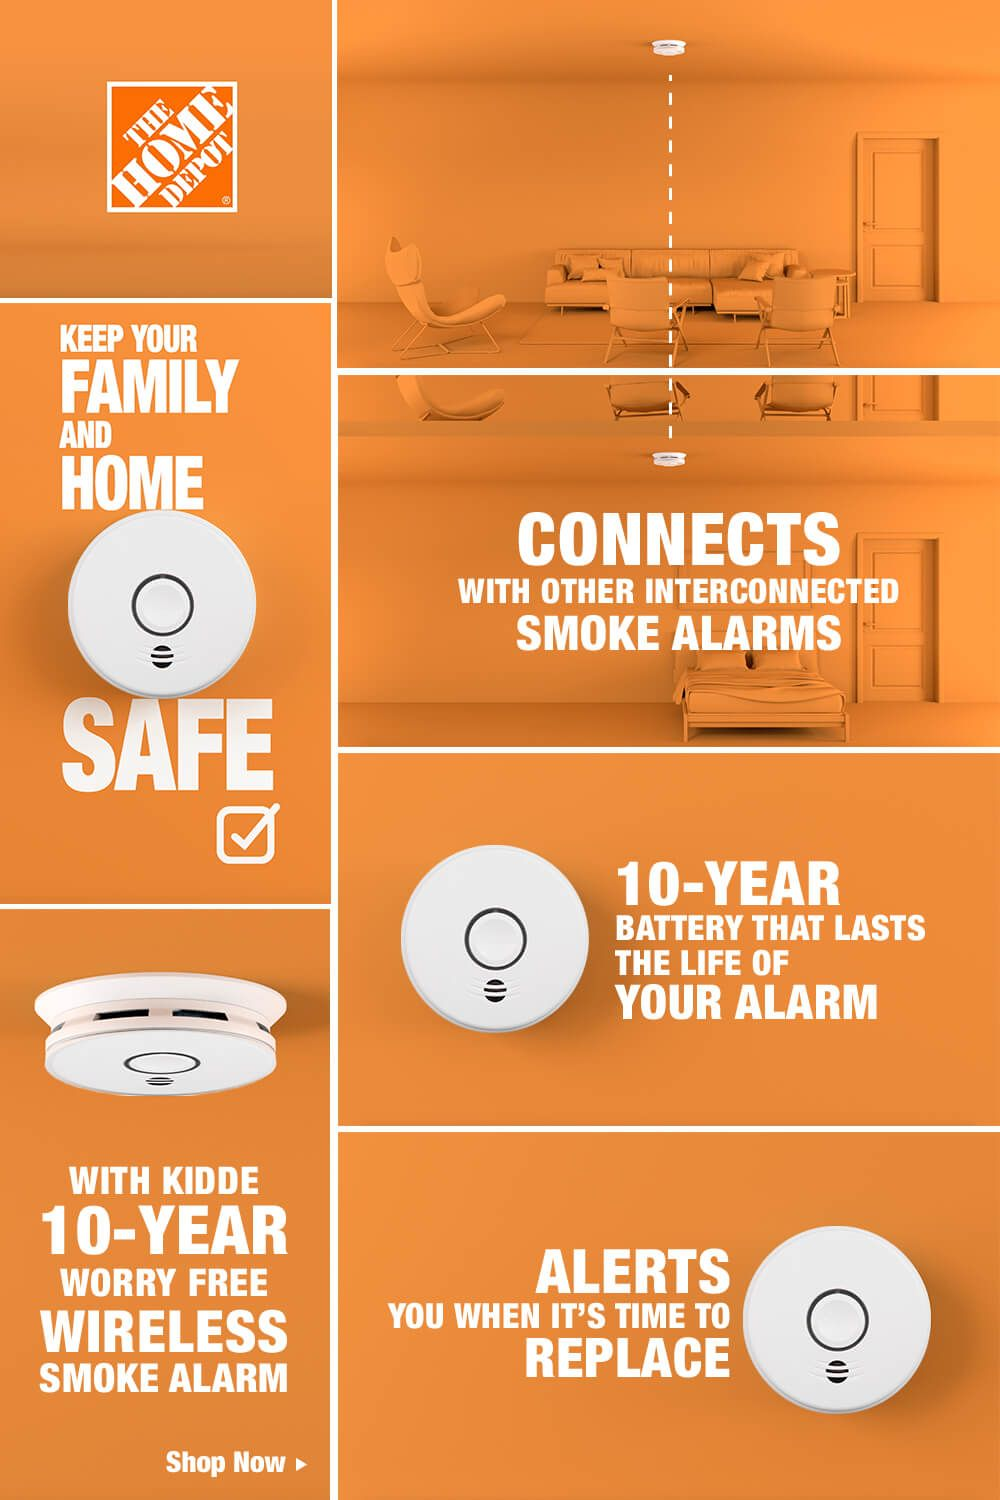 Protect Your Home And Family With The Kidde 10 Year Worry Free Battery Smoke Alarm With A Battery That Last Smoke Alarms Cool Things To Buy Home Maintenance